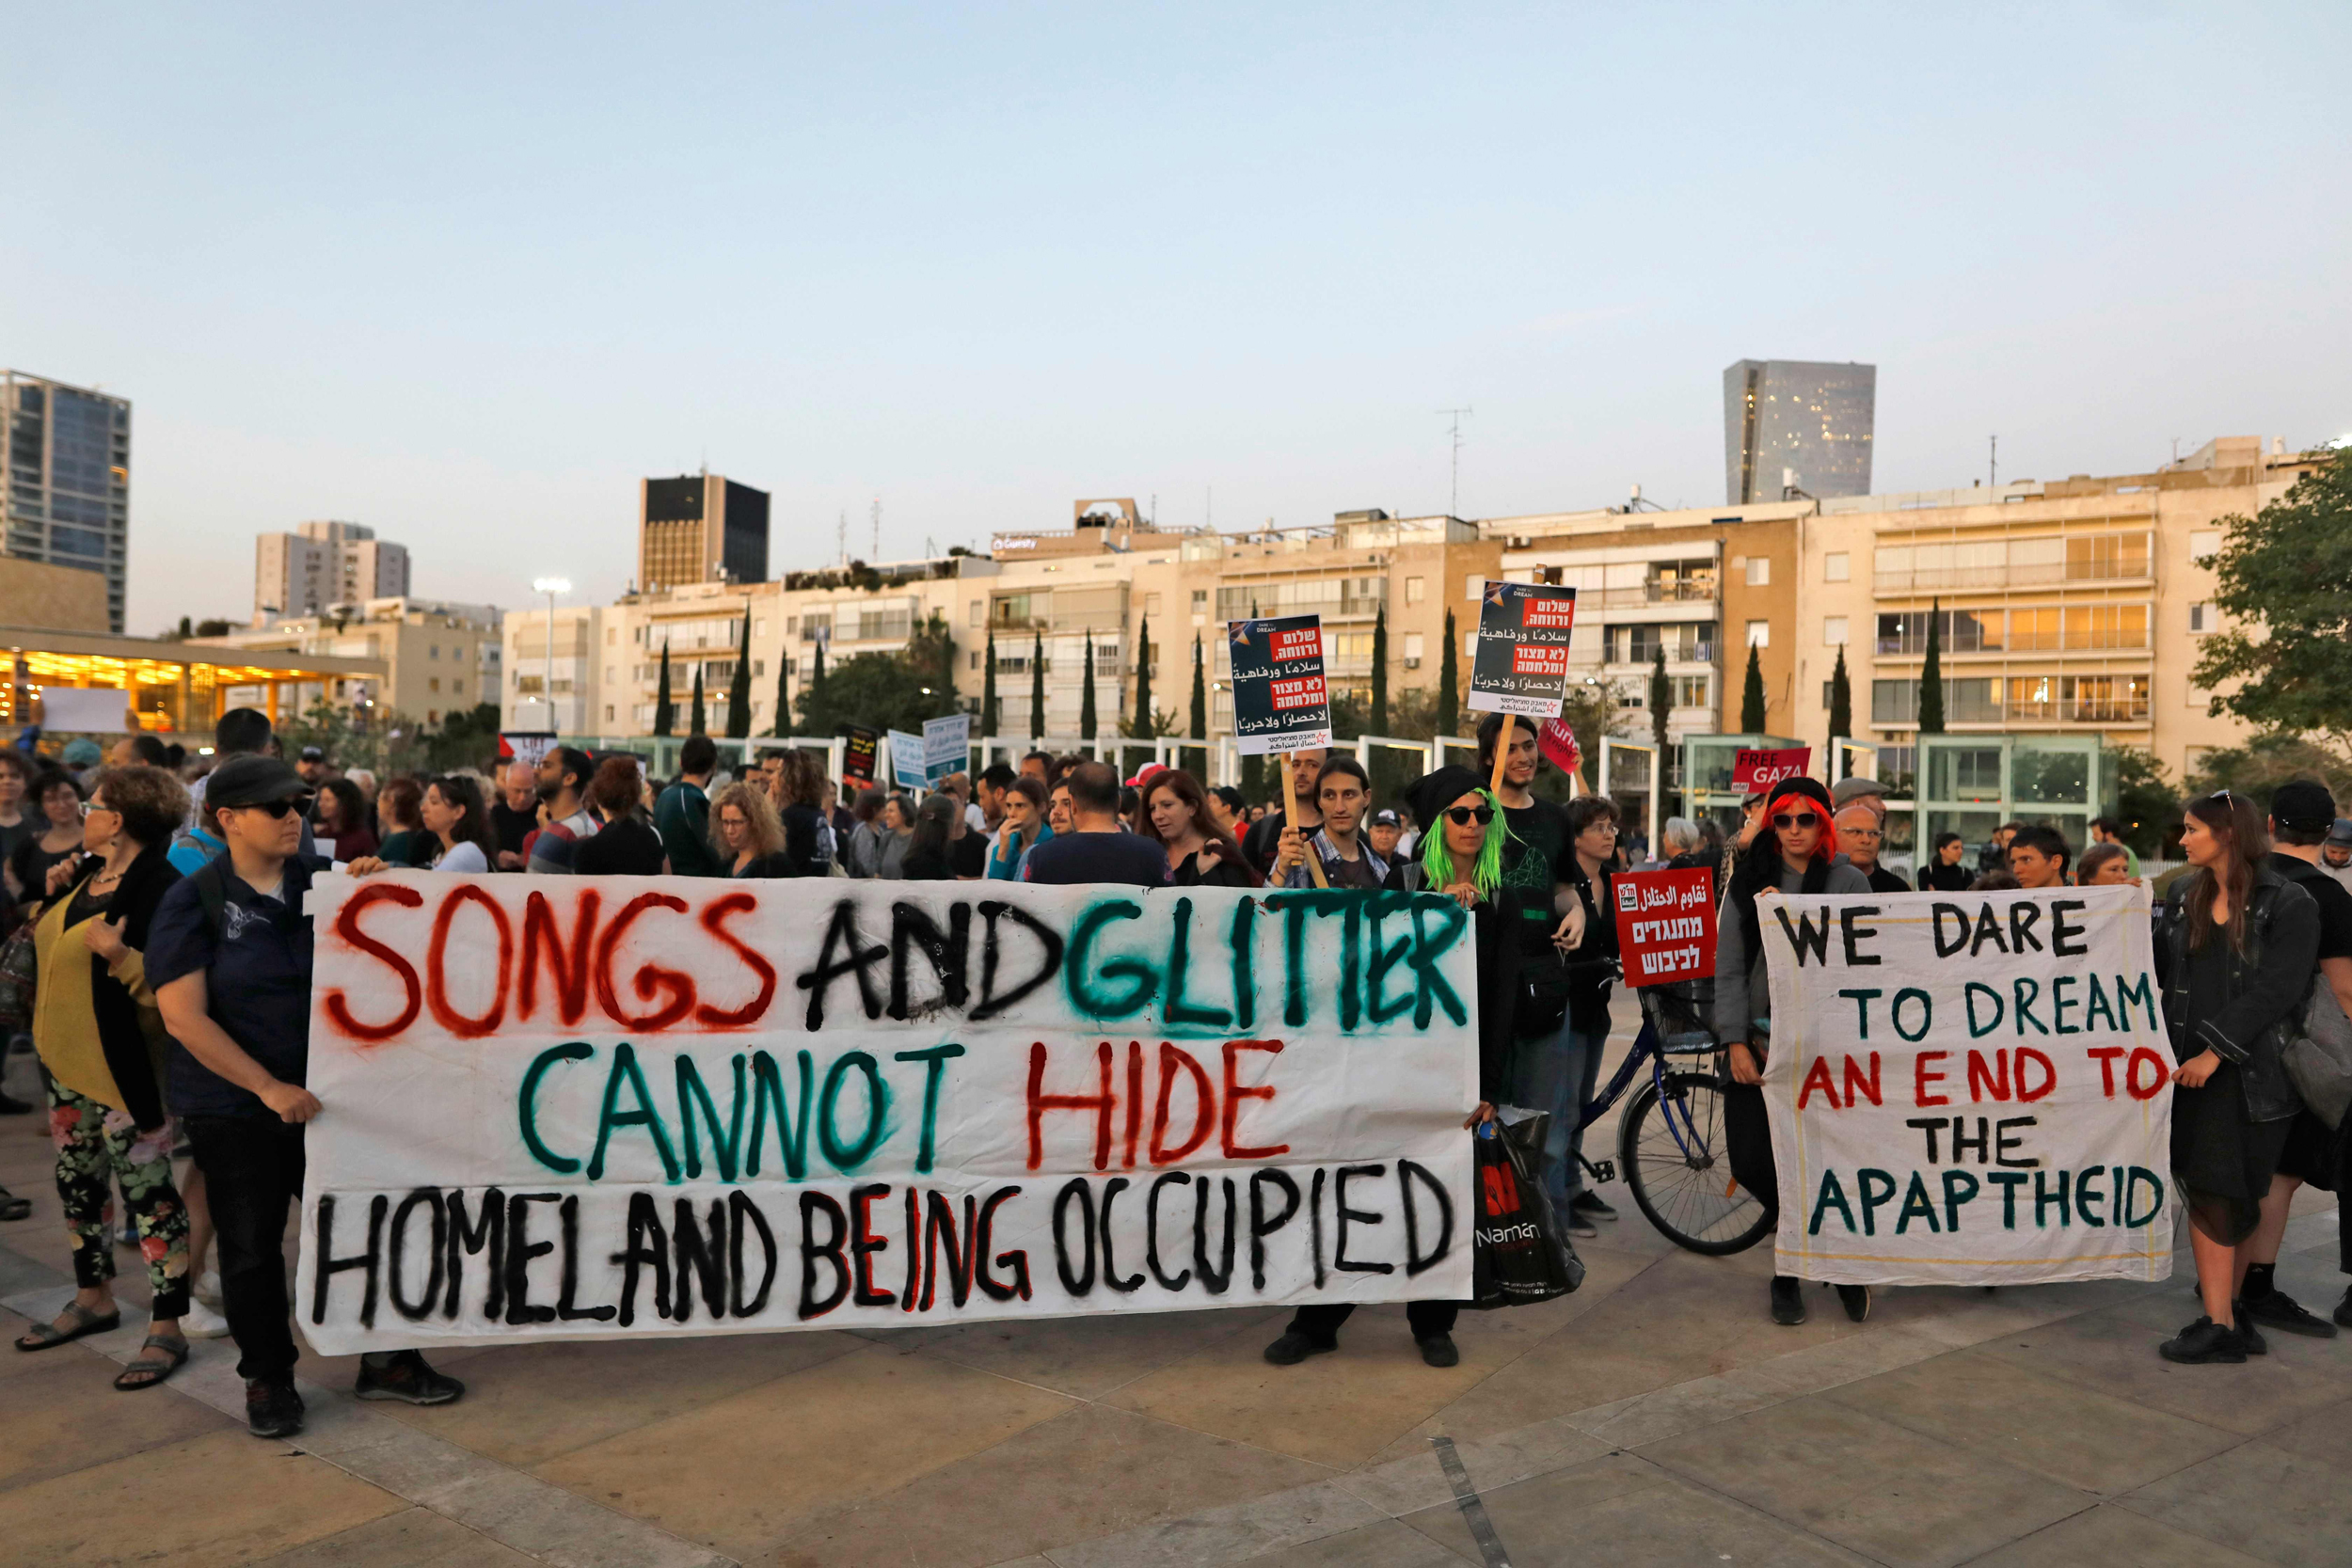 Israel hosts Eurovision song contest amid protests